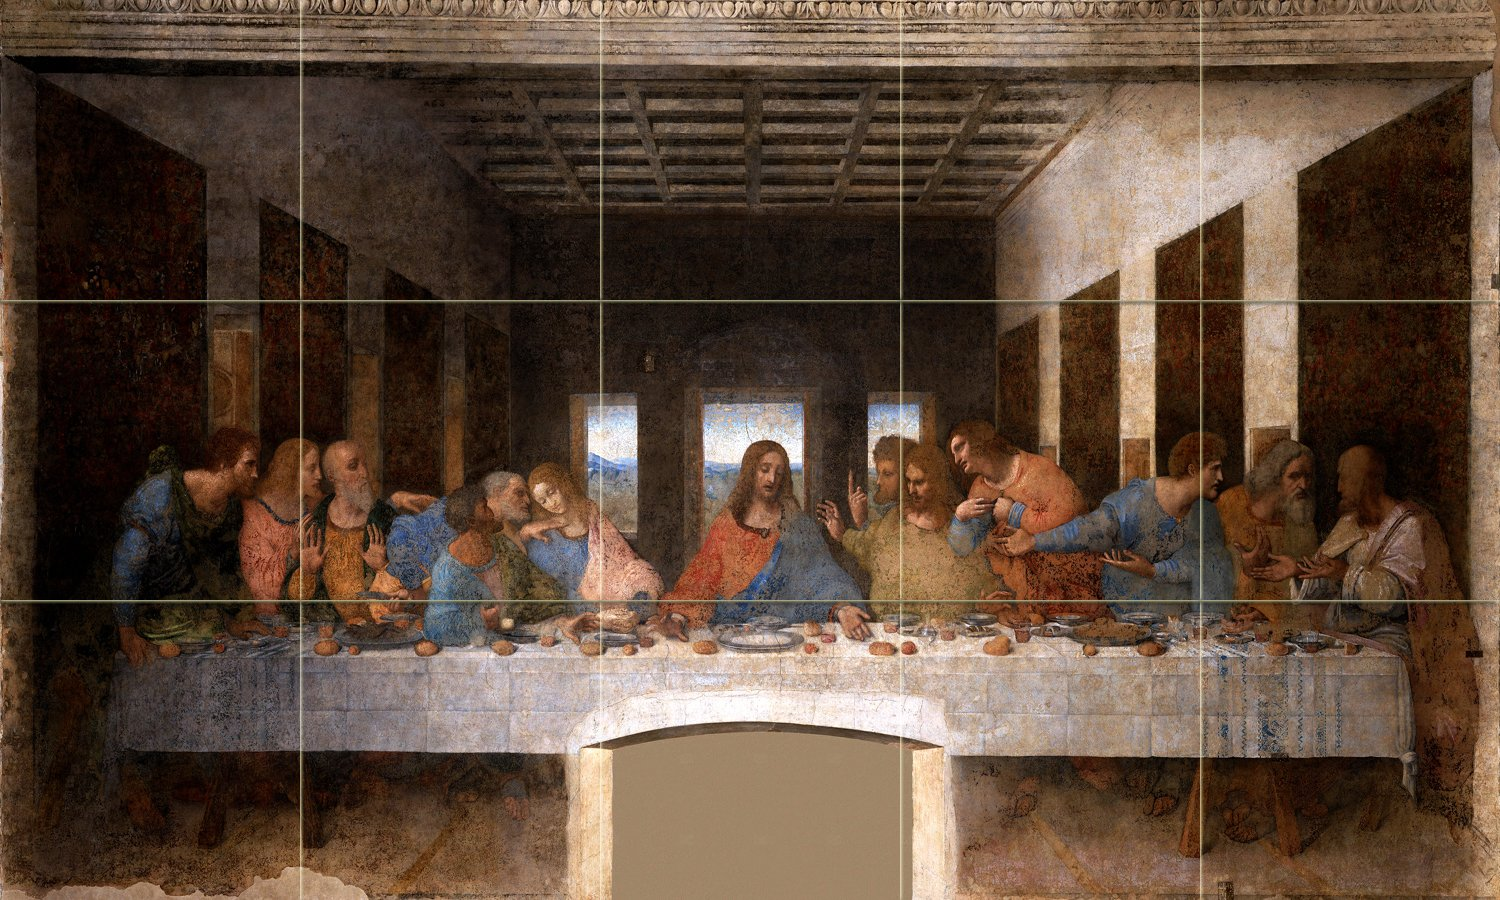 The Last Supper by Leonardo da Vinci Tile Mural Kitchen Bathroom Wall Backsplash Behind Stove Range Sink Splashback 5x3 6'' Ceramic, Matte